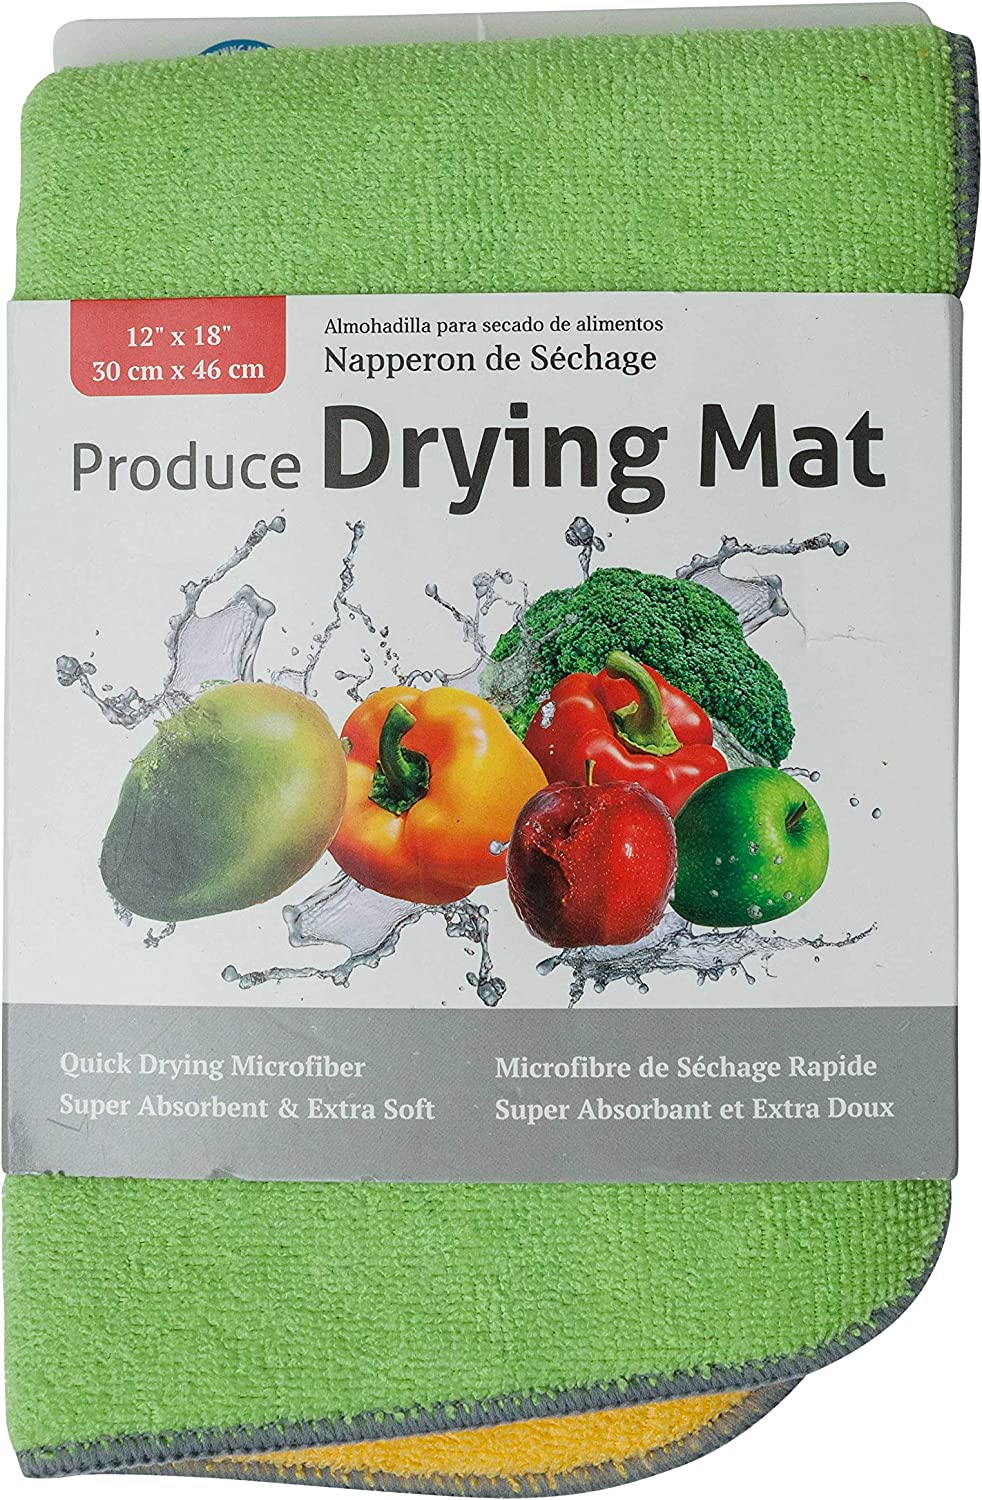 Jacent Microfiber Produce Drying Mat, 12 x 18 inch - 1 Pack